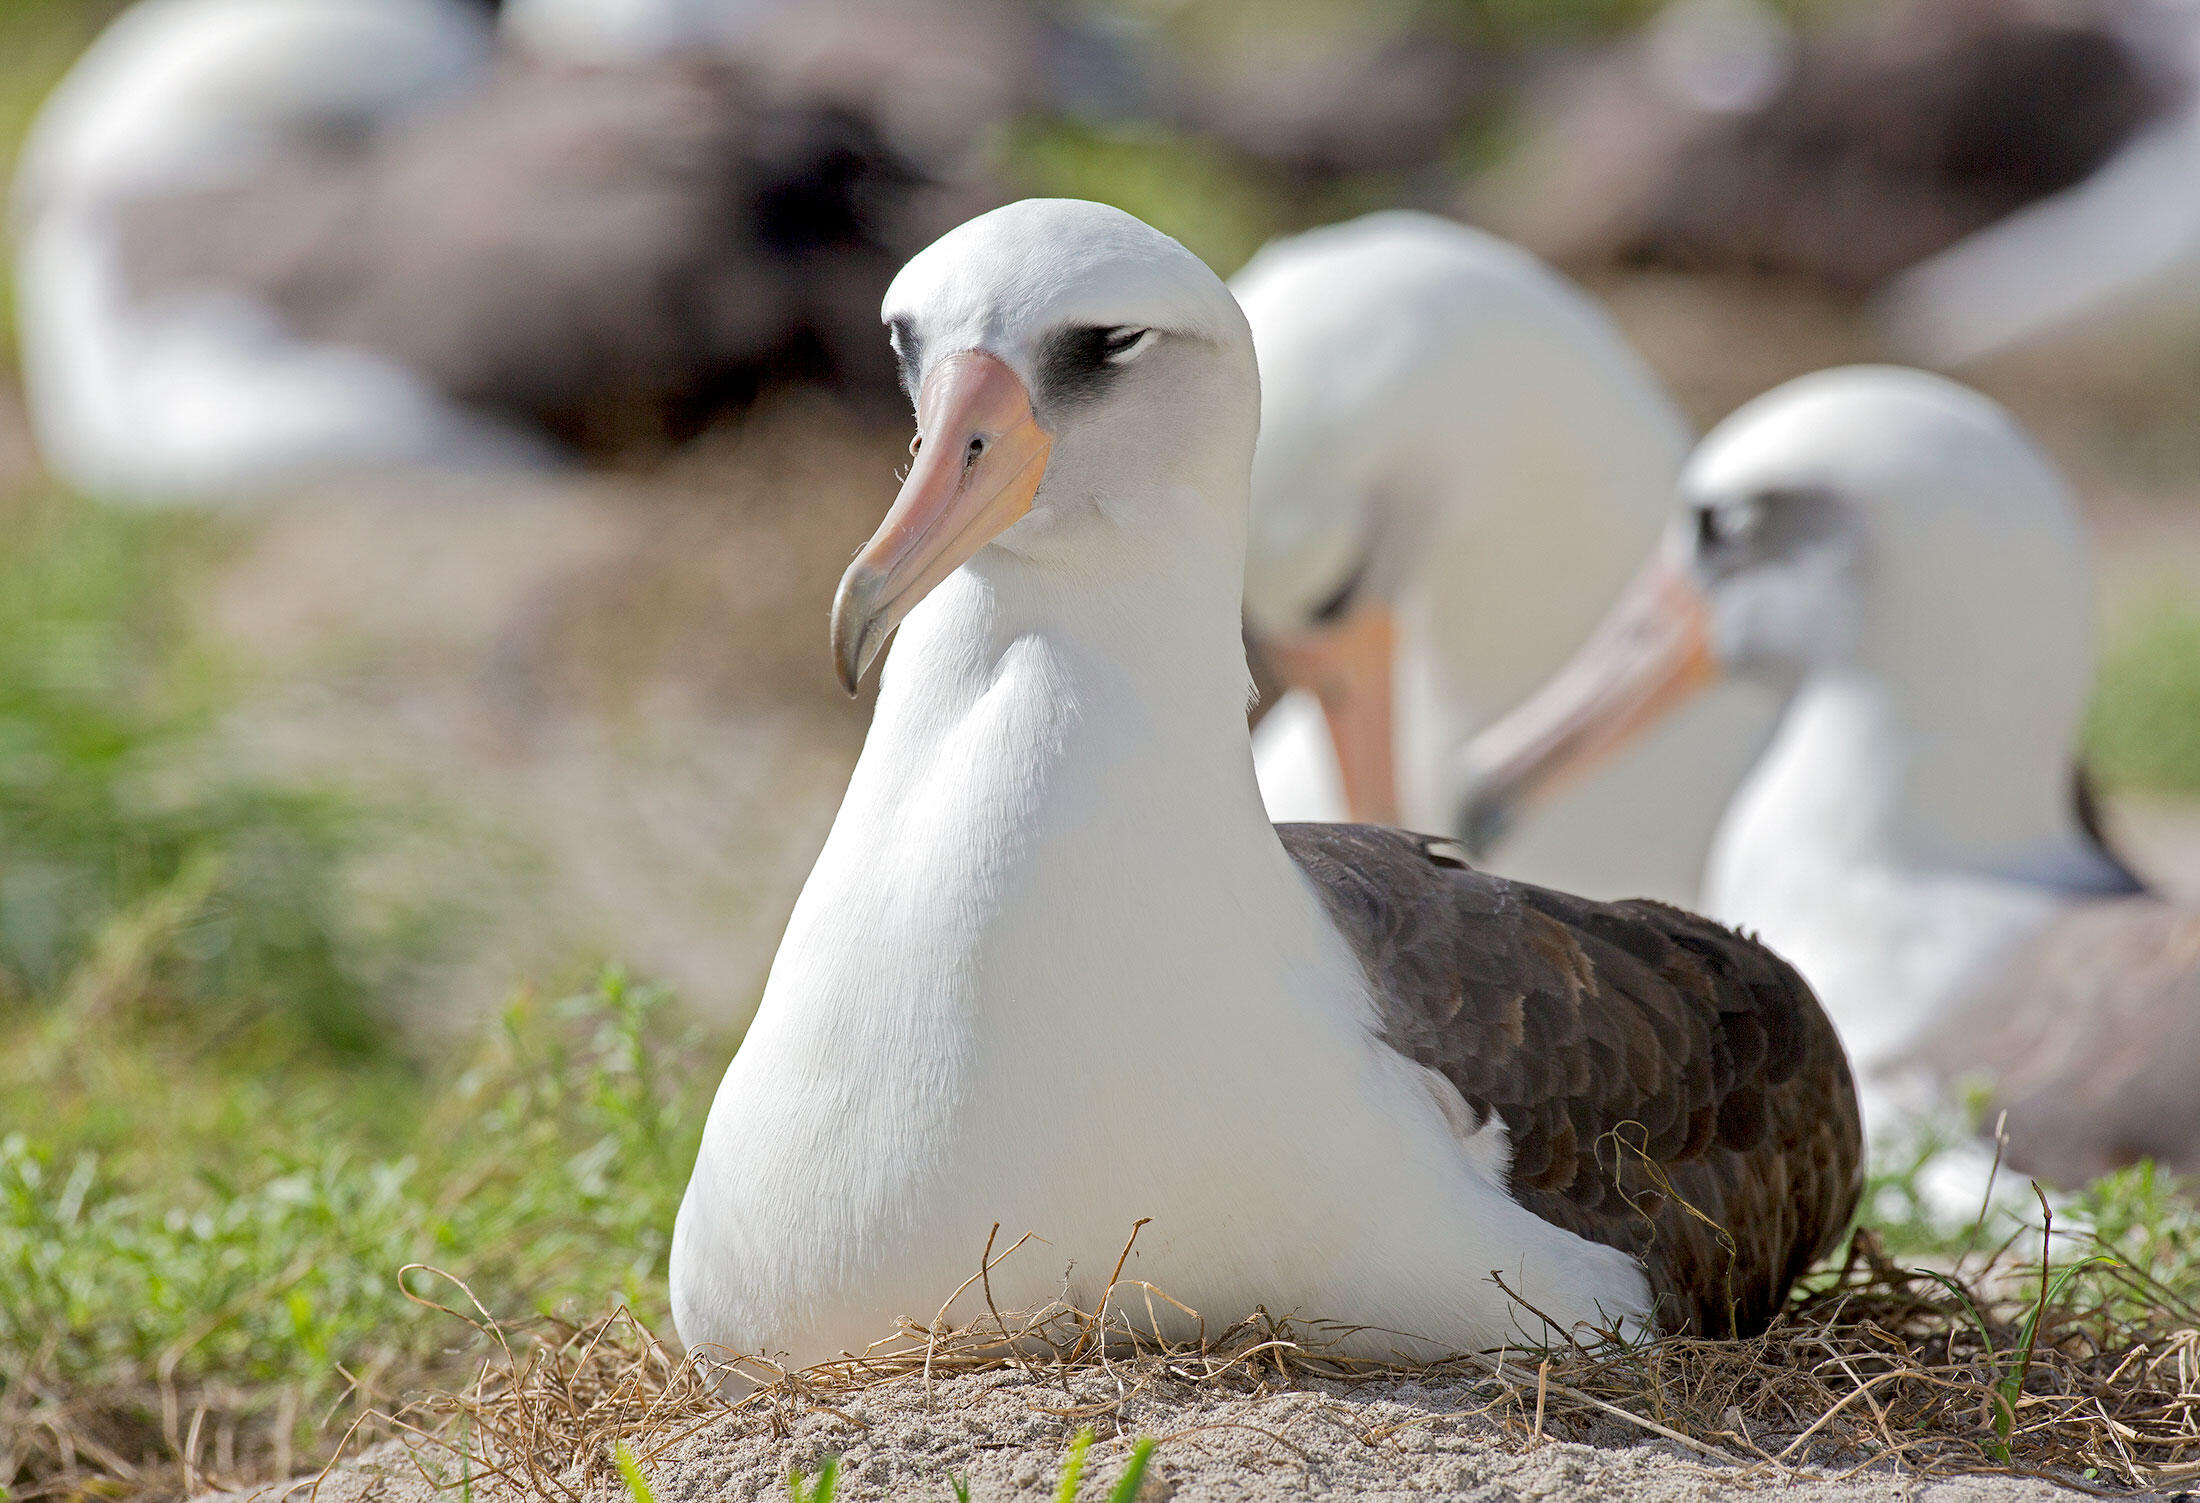 Wisdom incubating her egg on Midway Atoll National Wildlife Refuge, where invasive mice have begun attacking nesting albatross at night. Daniel W. Clark/USFWS